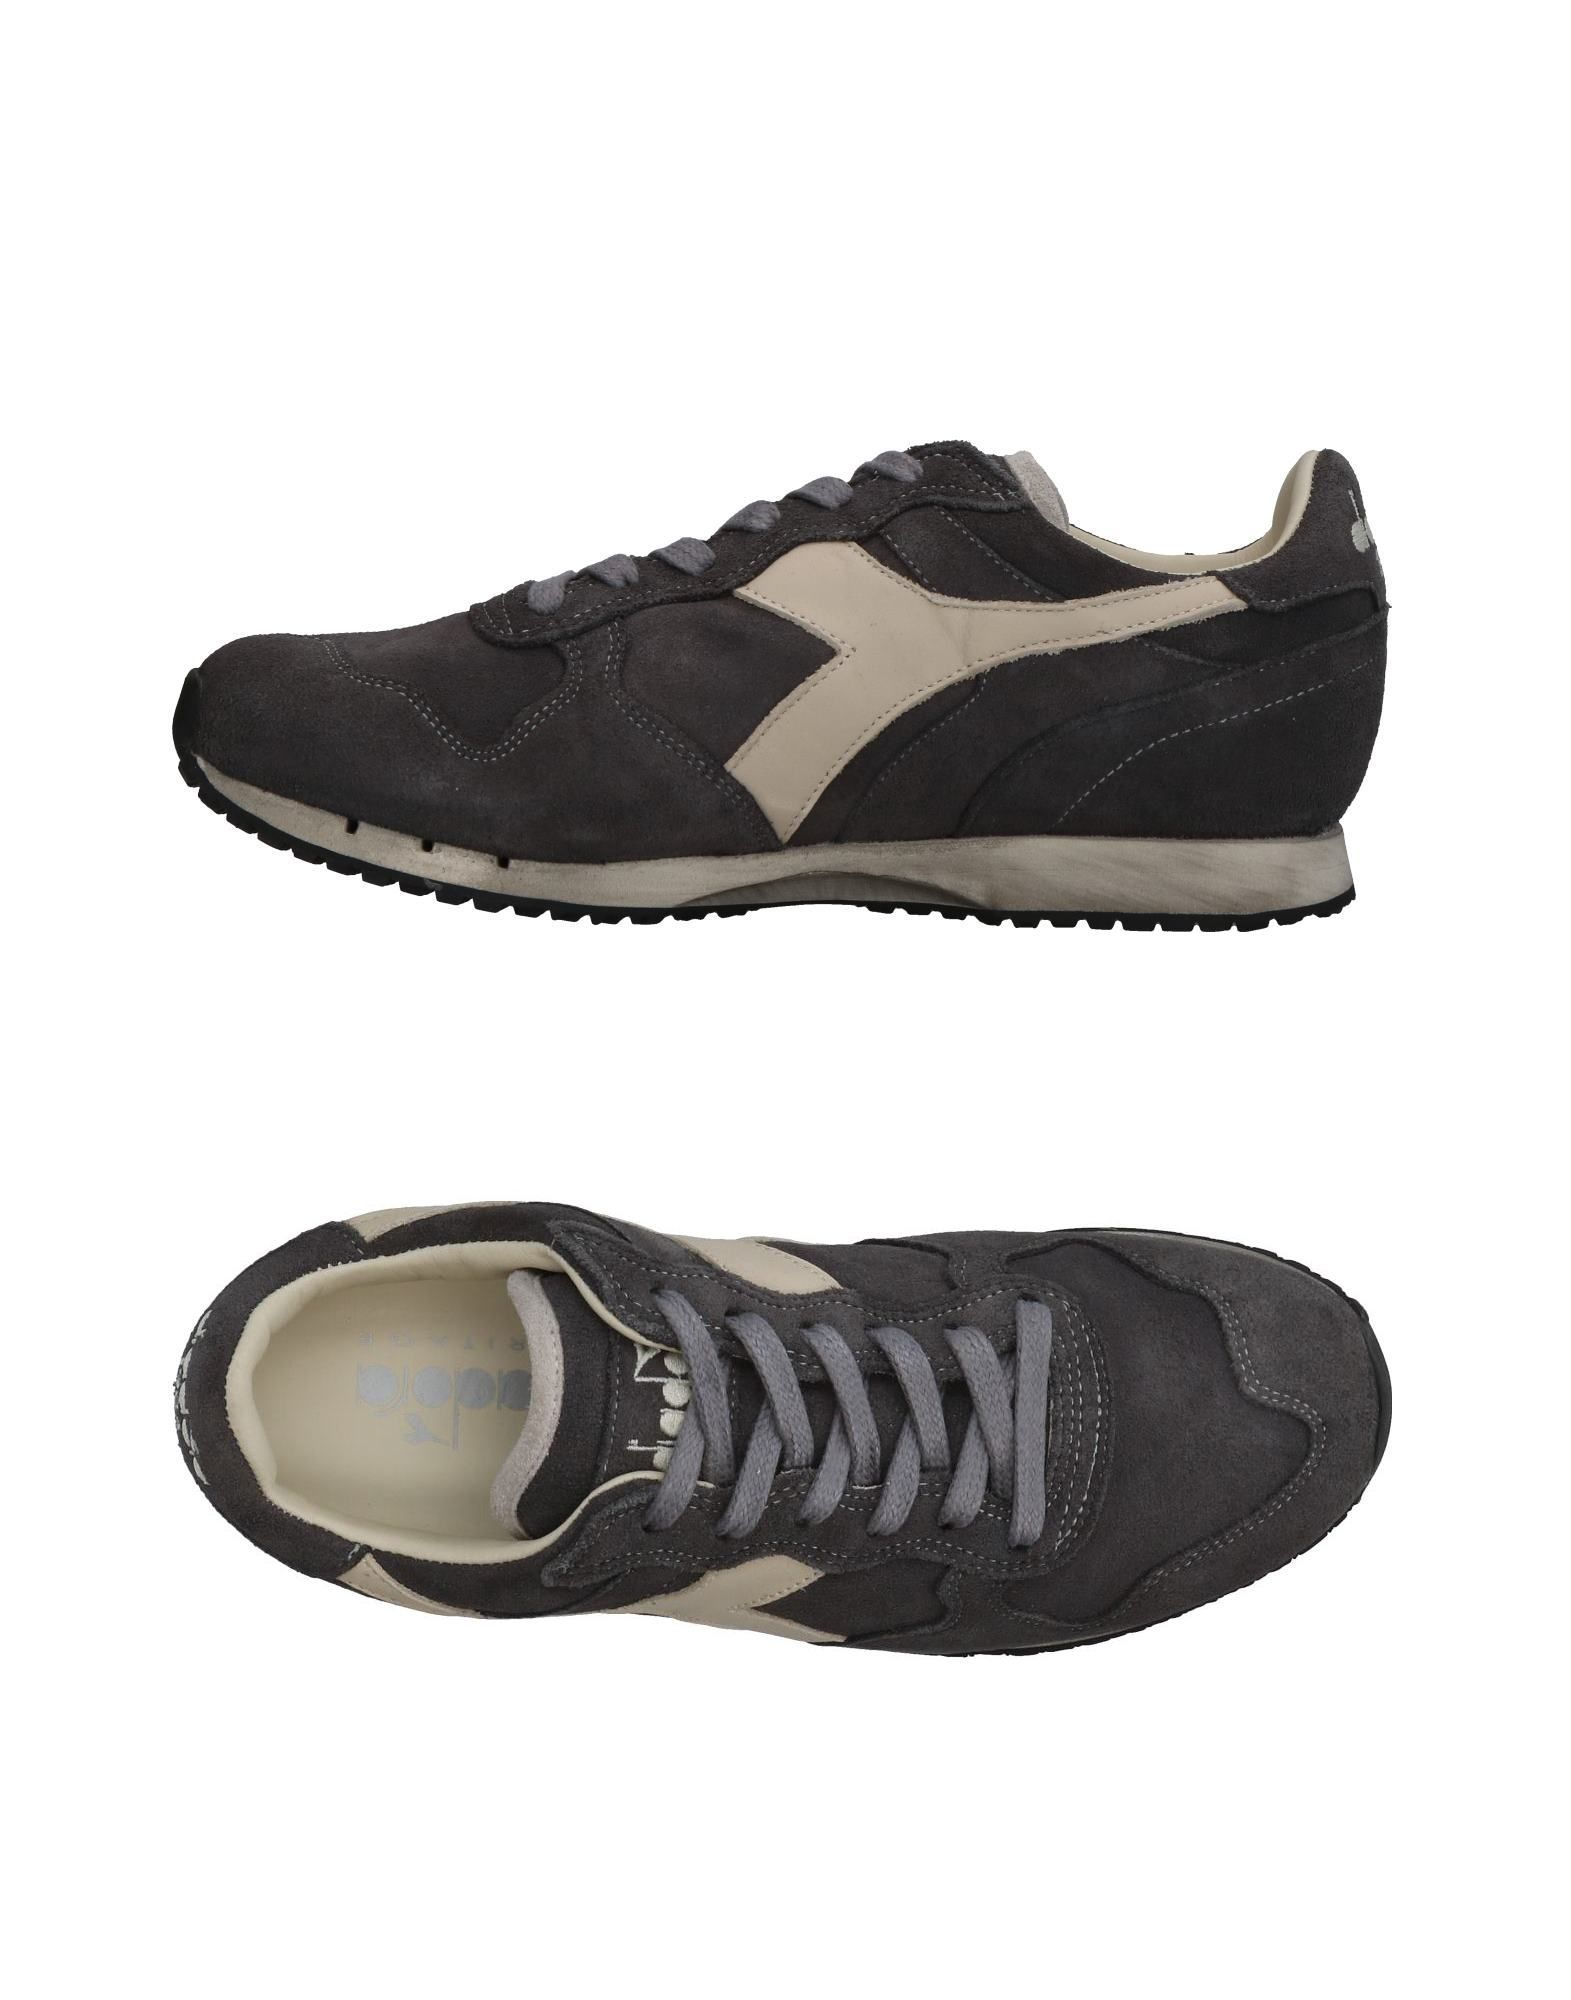 Diadora Heritage Sneakers - Men Diadora  Heritage Sneakers online on  Diadora United Kingdom - 11343613TO 910fc1